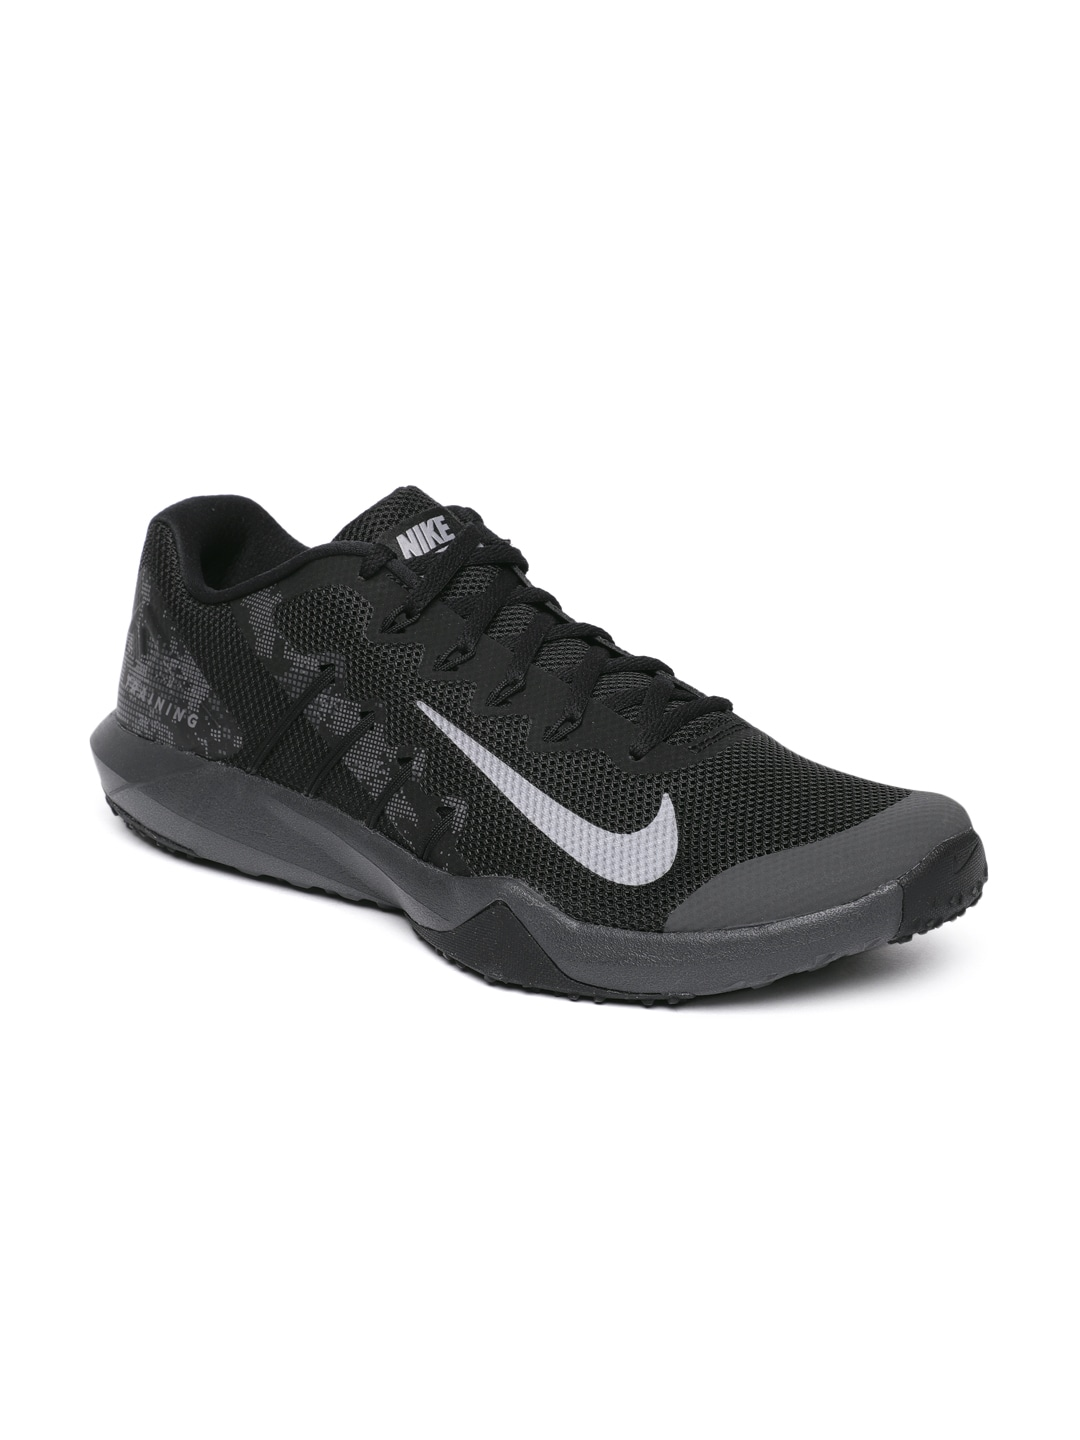 ceede6235b95d Nike Shoes - Buy Nike Shoes for Men